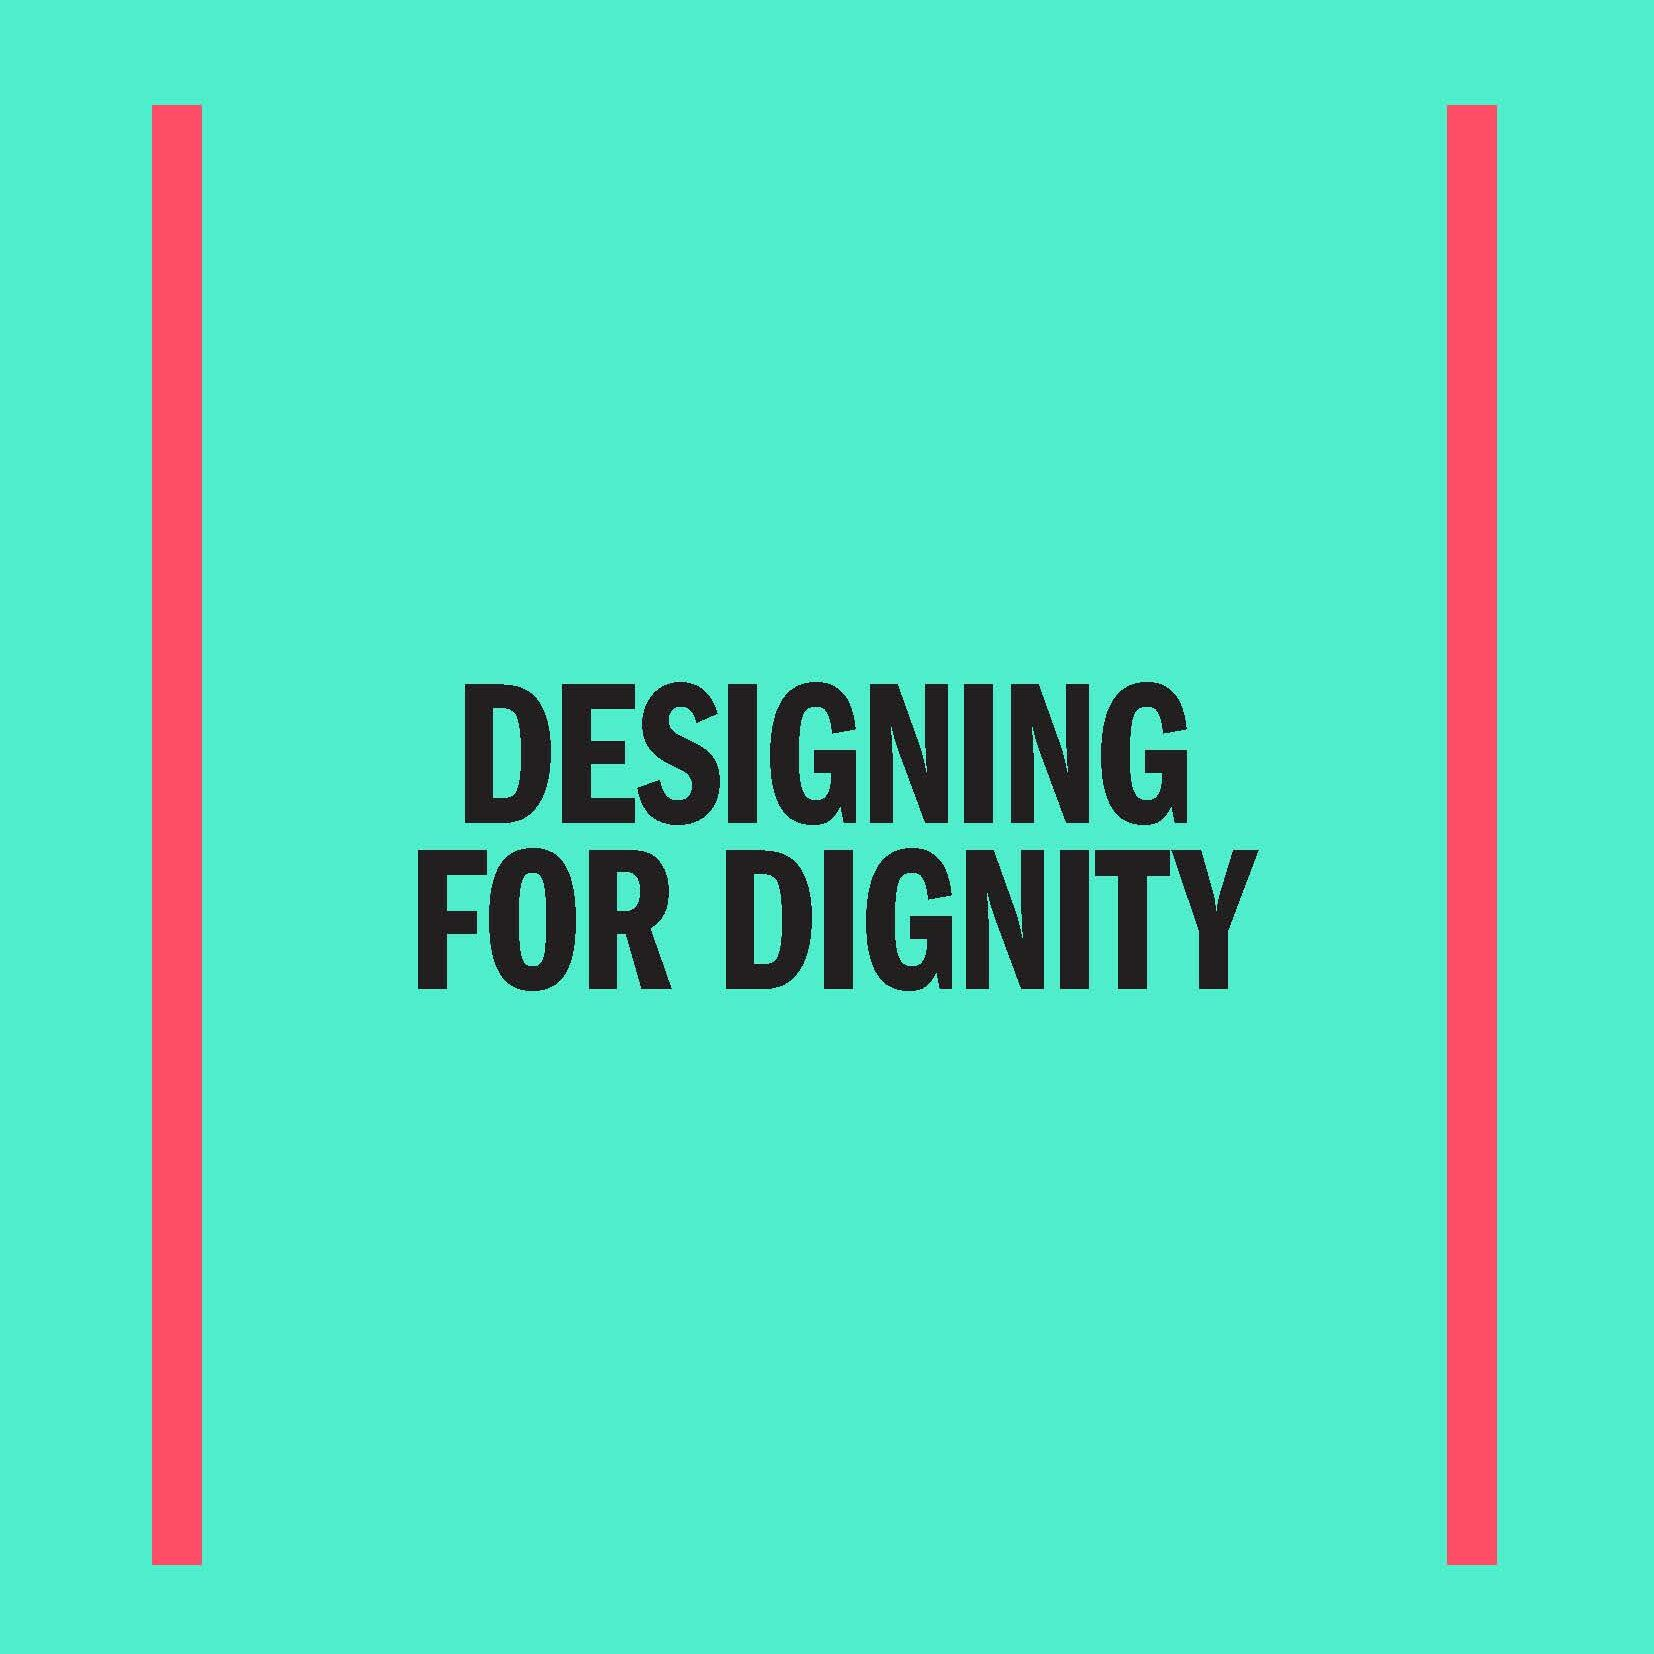 Designing for Dignity